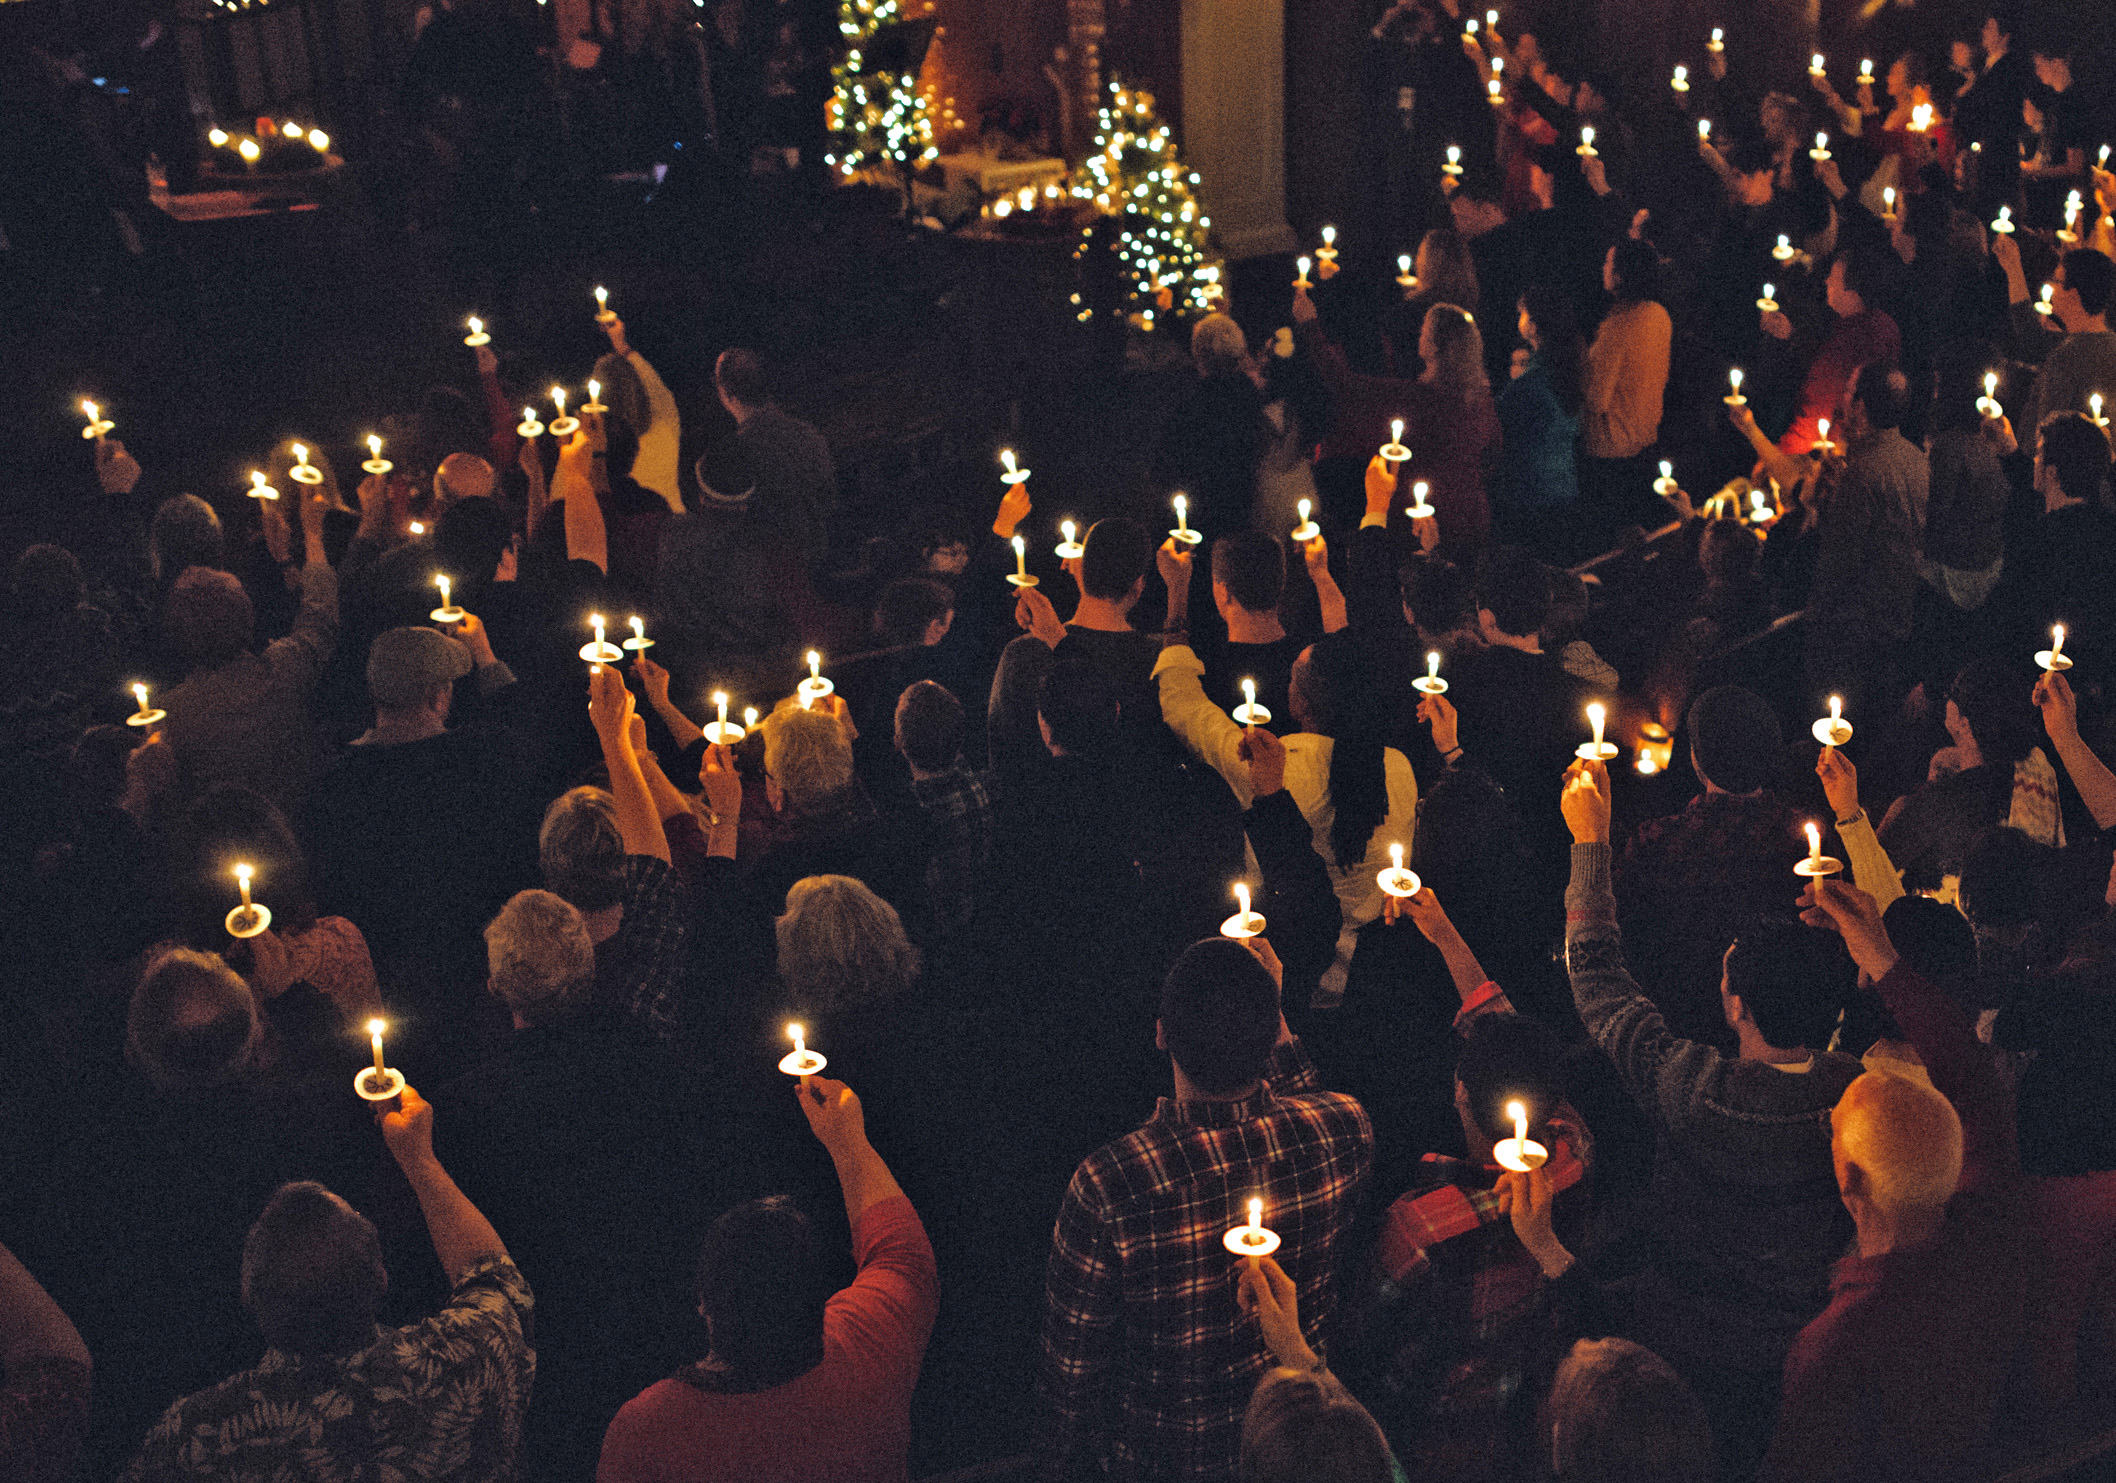 Christmas Candlelight Services Near Me 2020 How Do I Plan a Christmas Eve Candlelight Service? | LoveToKnow